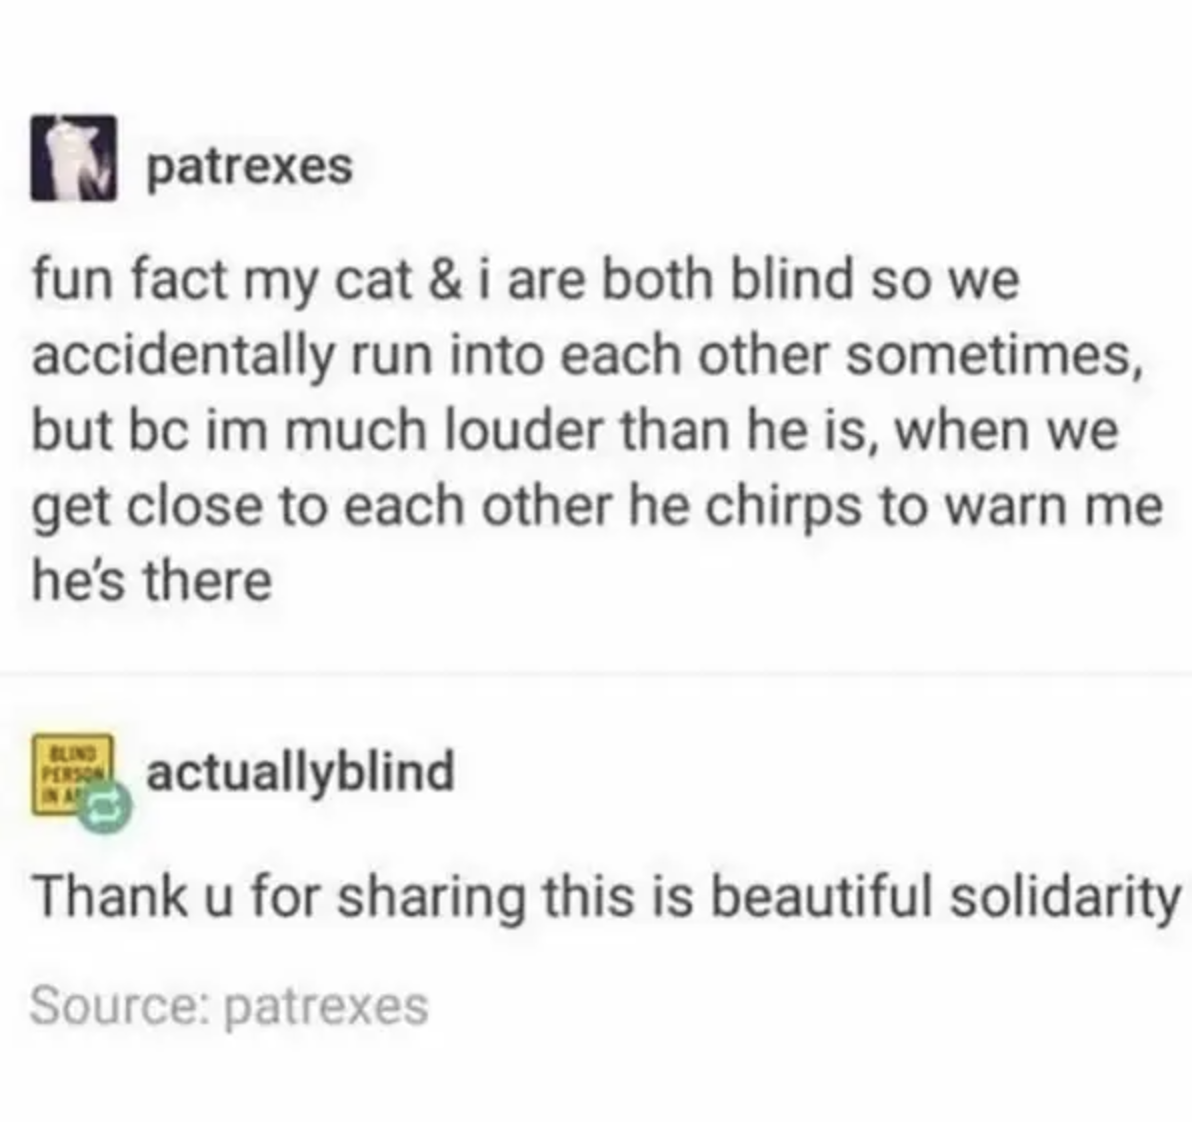 tumblr story about a blind person and a blind cat having each other's backs